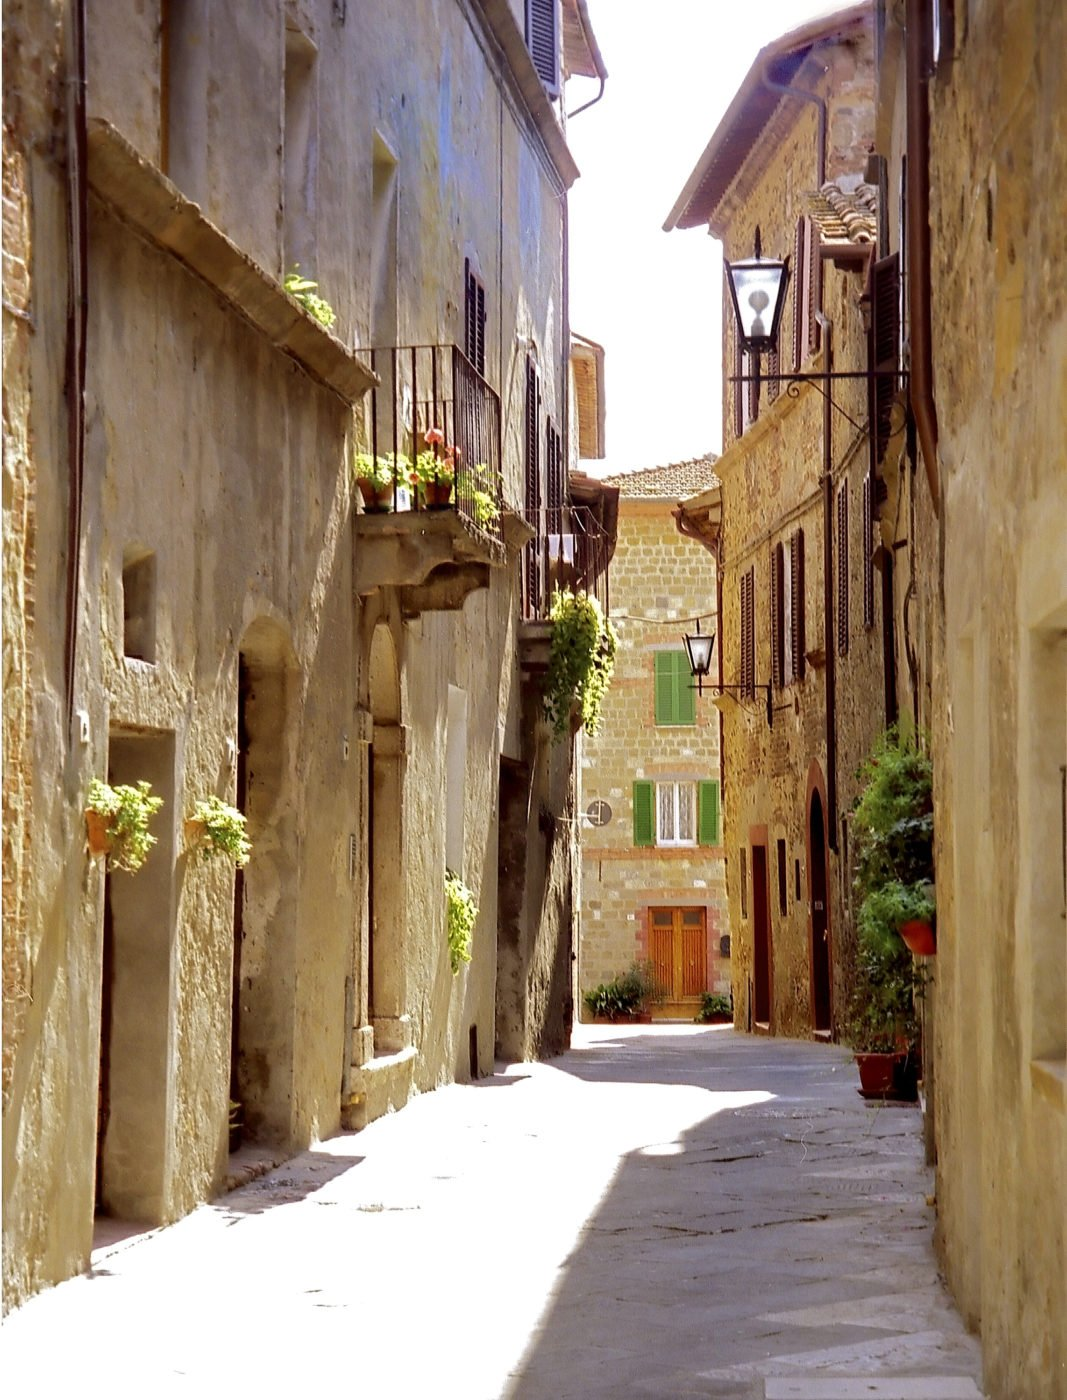 a narrow street in a village in Italy